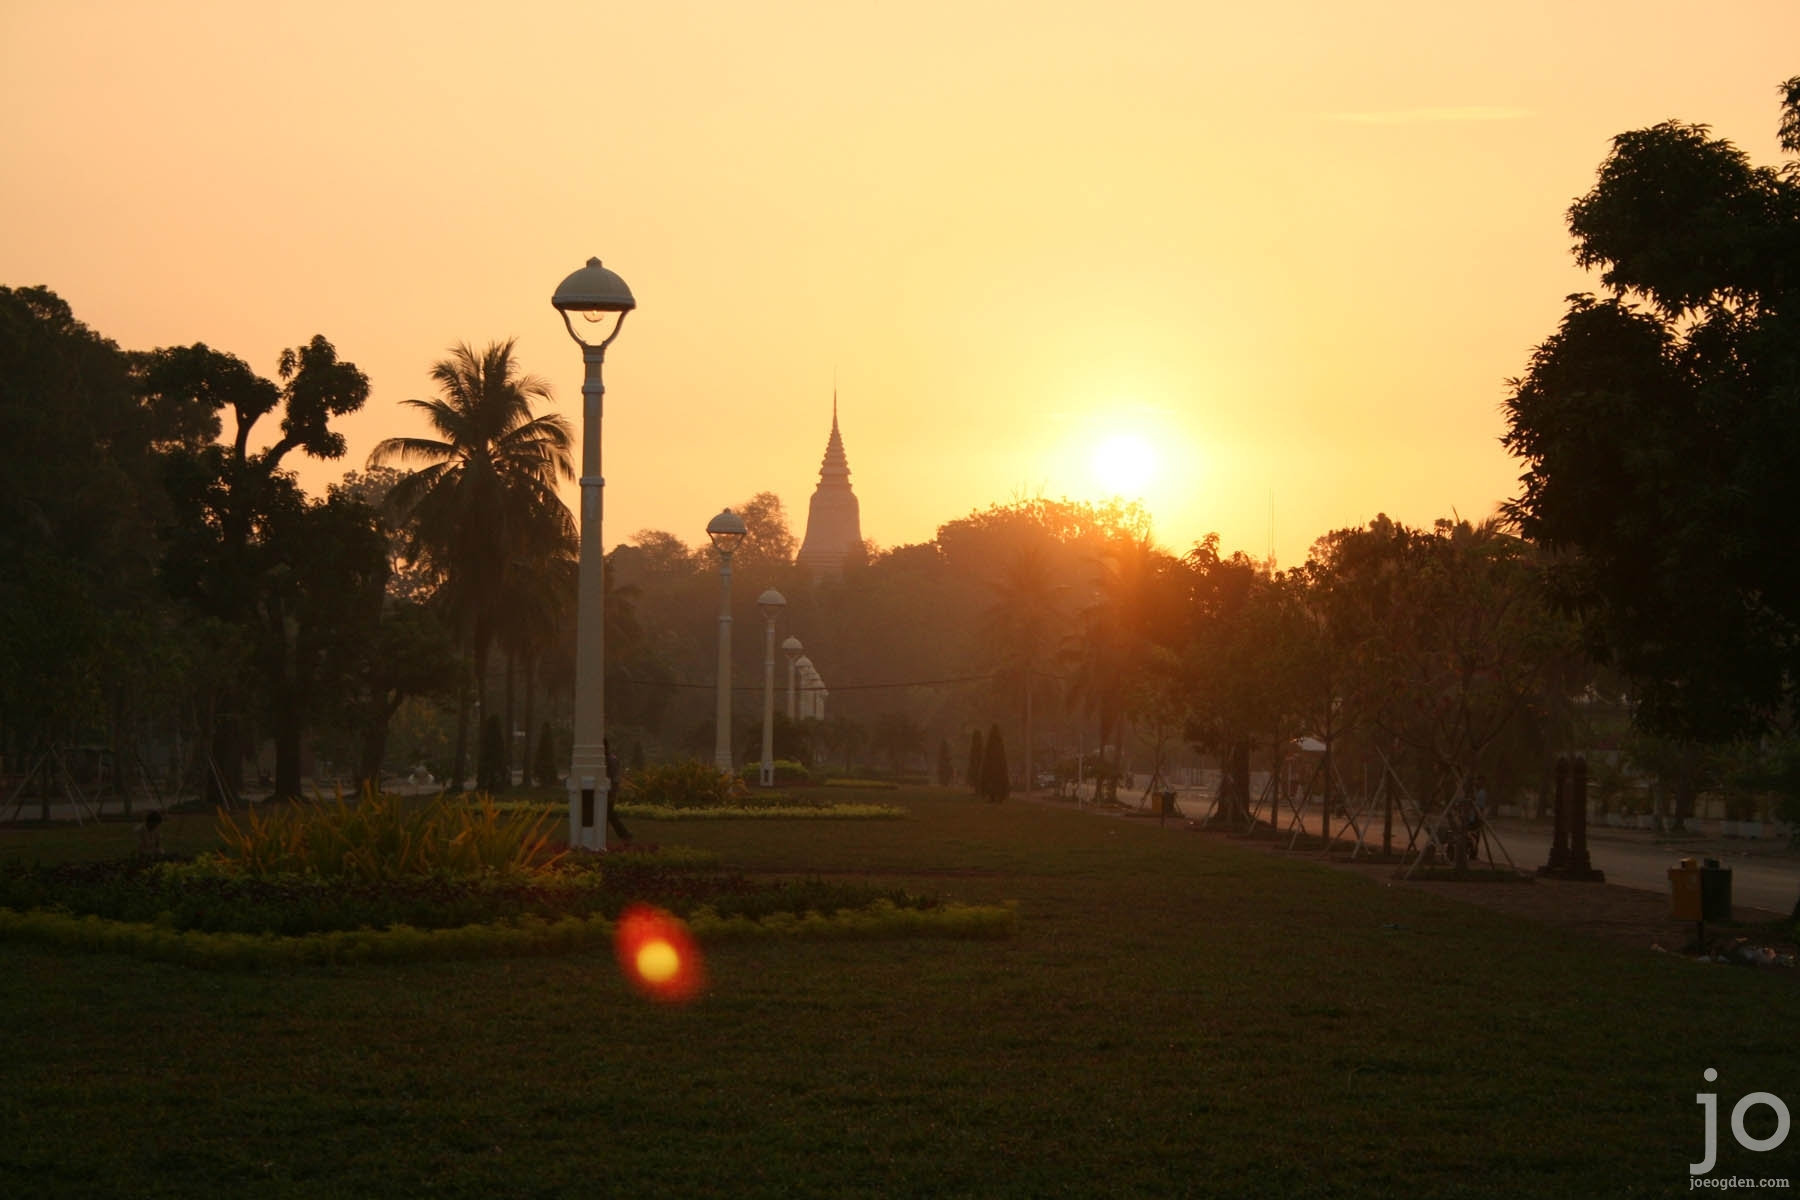 Sunrise at Wat Phnom, Phnom Penh, Cambodia